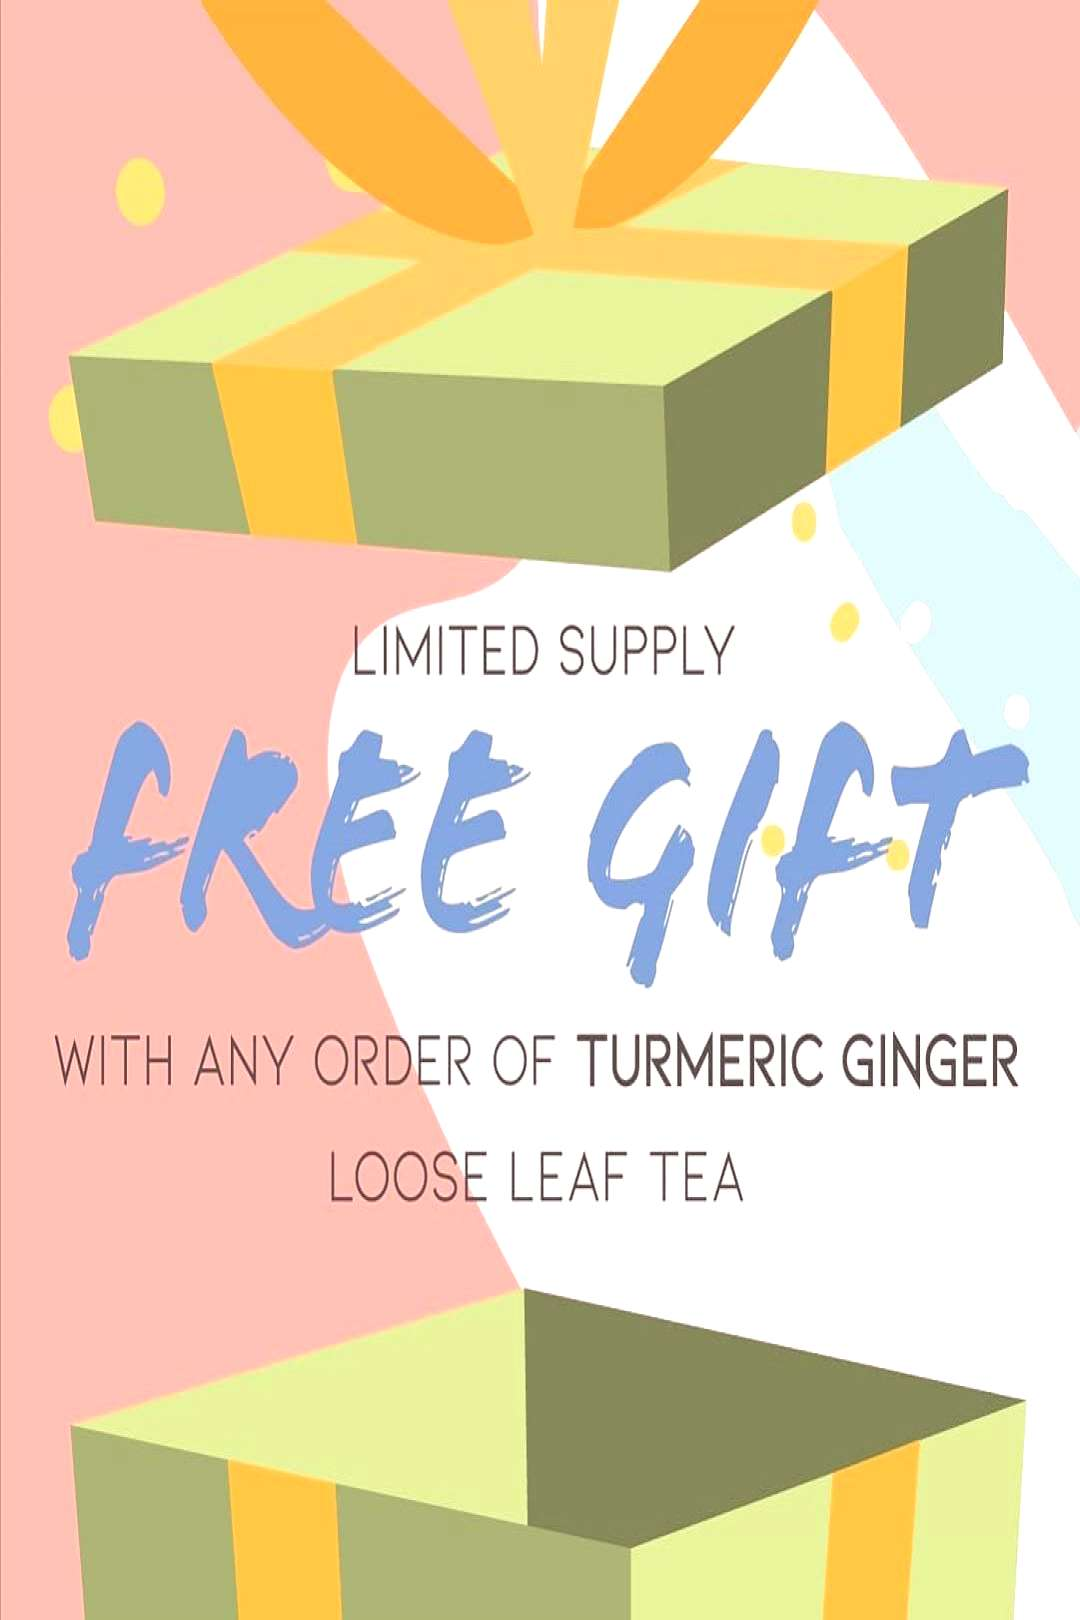 staywoketea on May 31 2020 text that says LIMITED SUPPLY FREE GIF